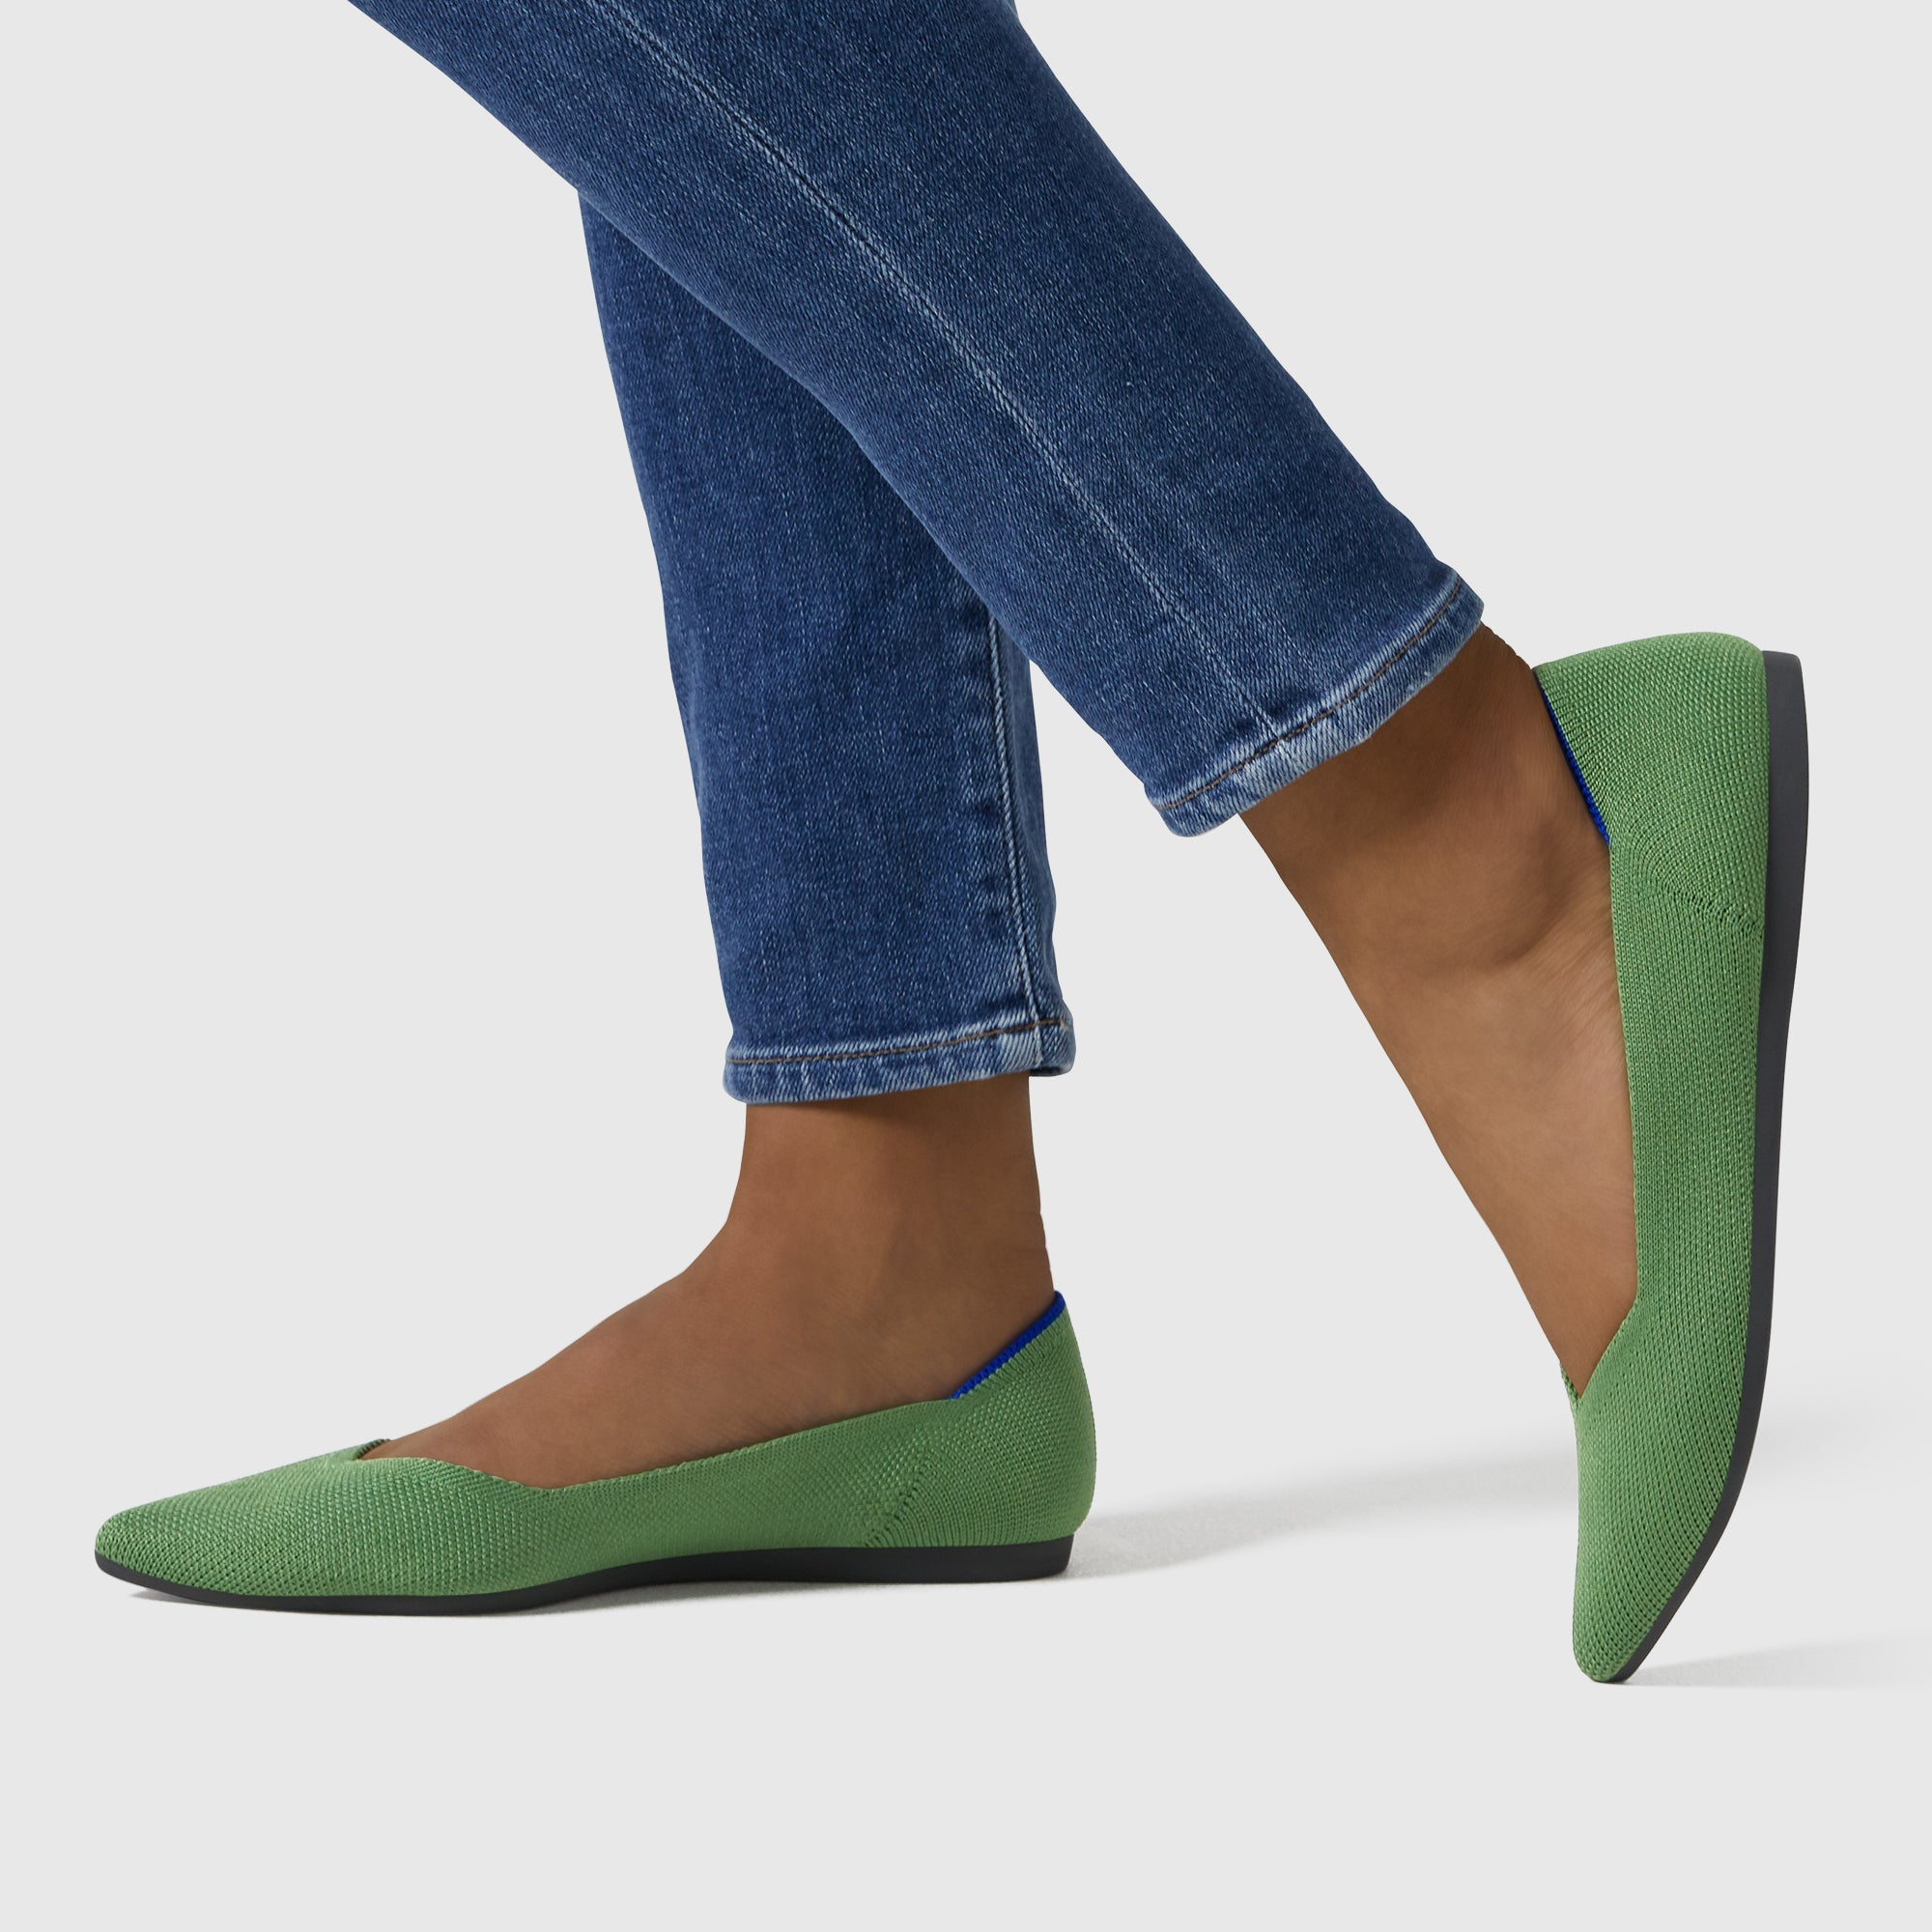 The Point shoe in Willow shown on-model at an angle.